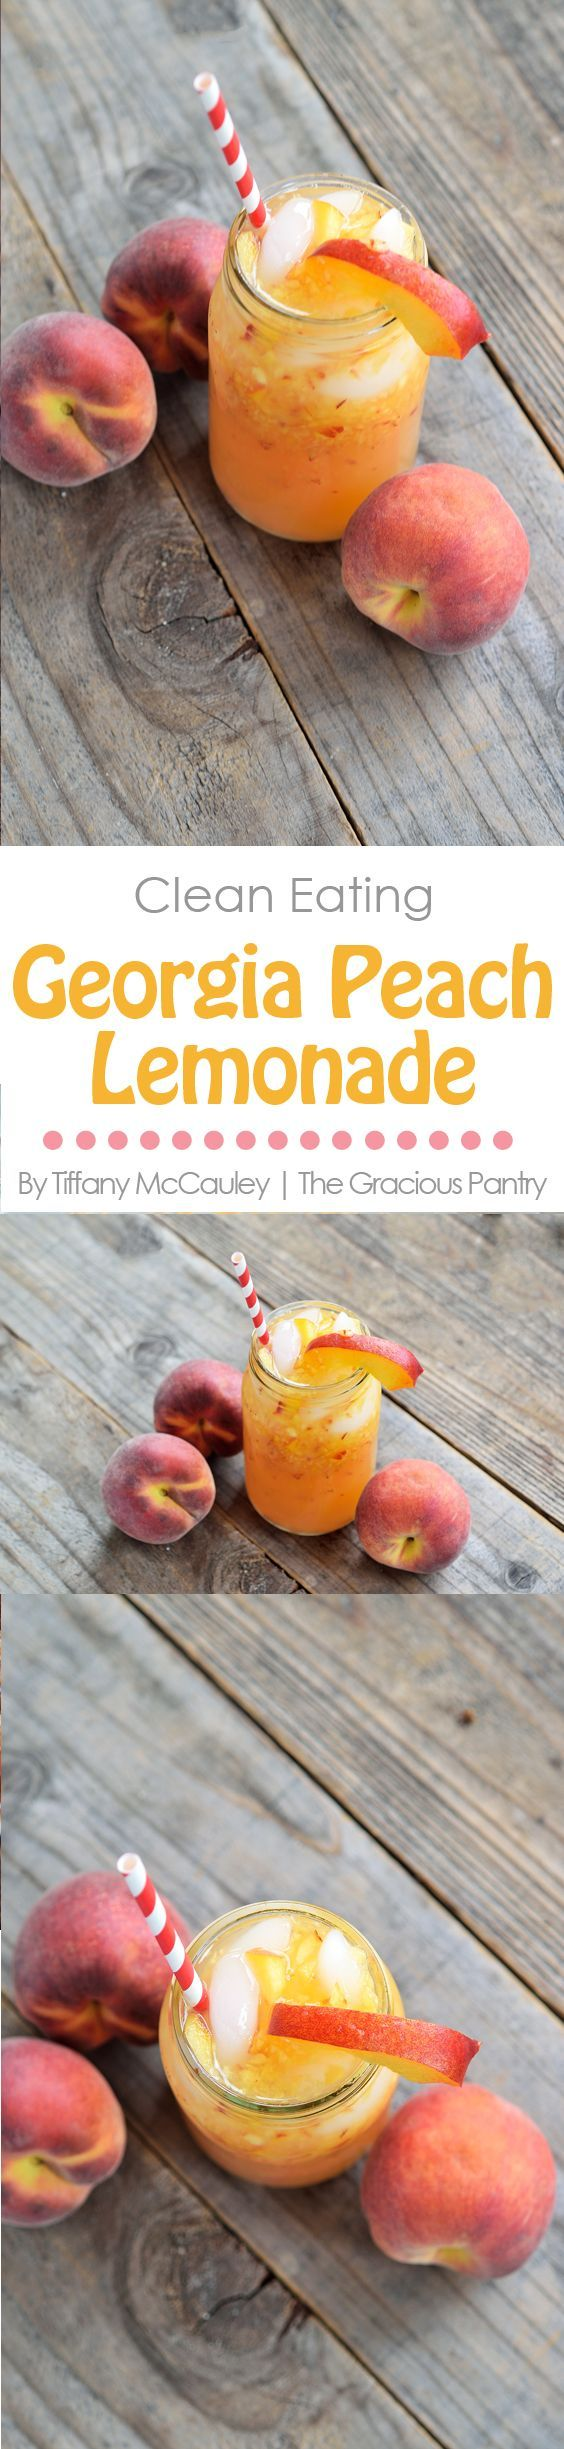 This Clean Eating Georgia Peach Lemonade Recipe is the perfect answer to a hot summer day. Sit on your porch and sip while the kids play. Perfection. ~ https://www.thegraciouspantry.com